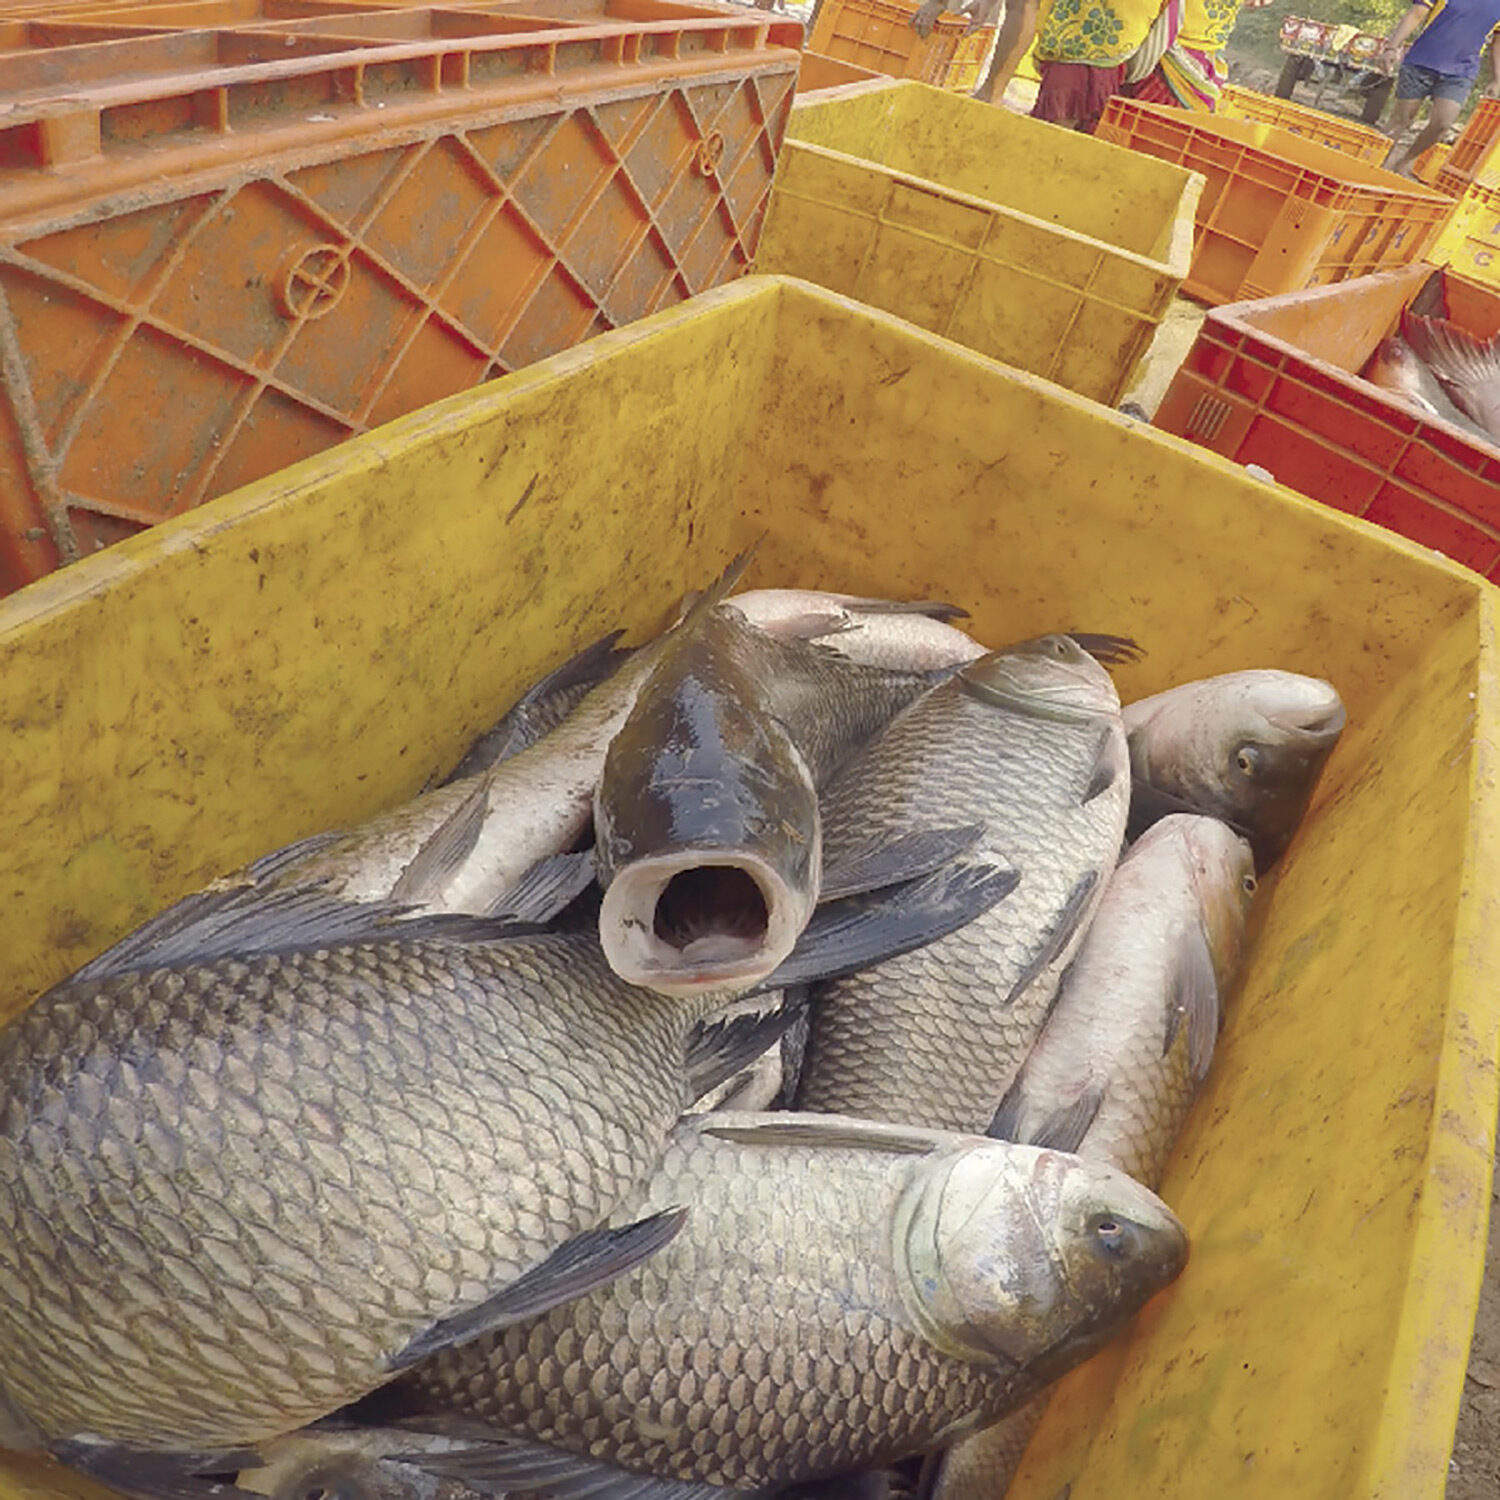 fish gasping for air in crates